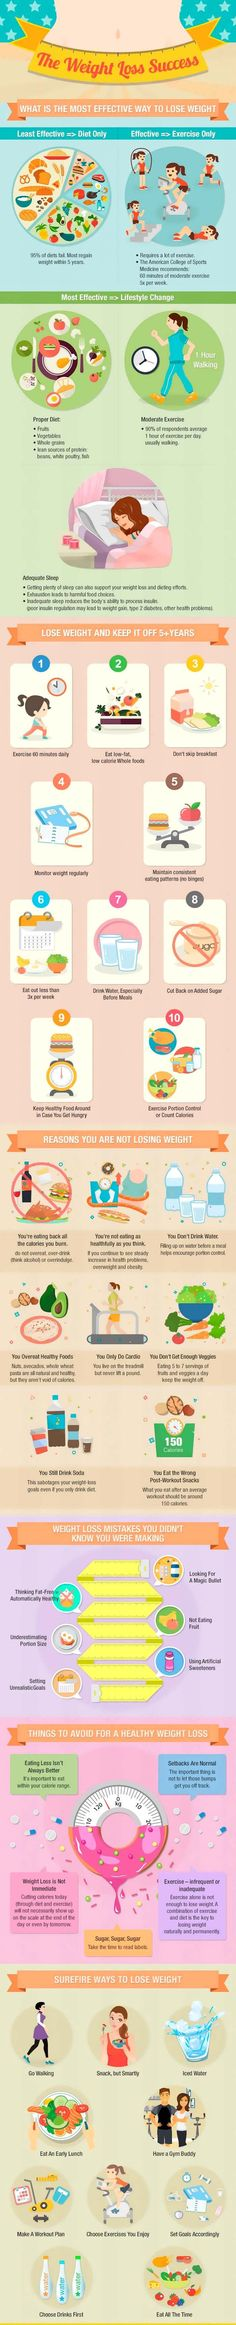 Lose 23 pounds in 21 days. The most effective ways to lose weight